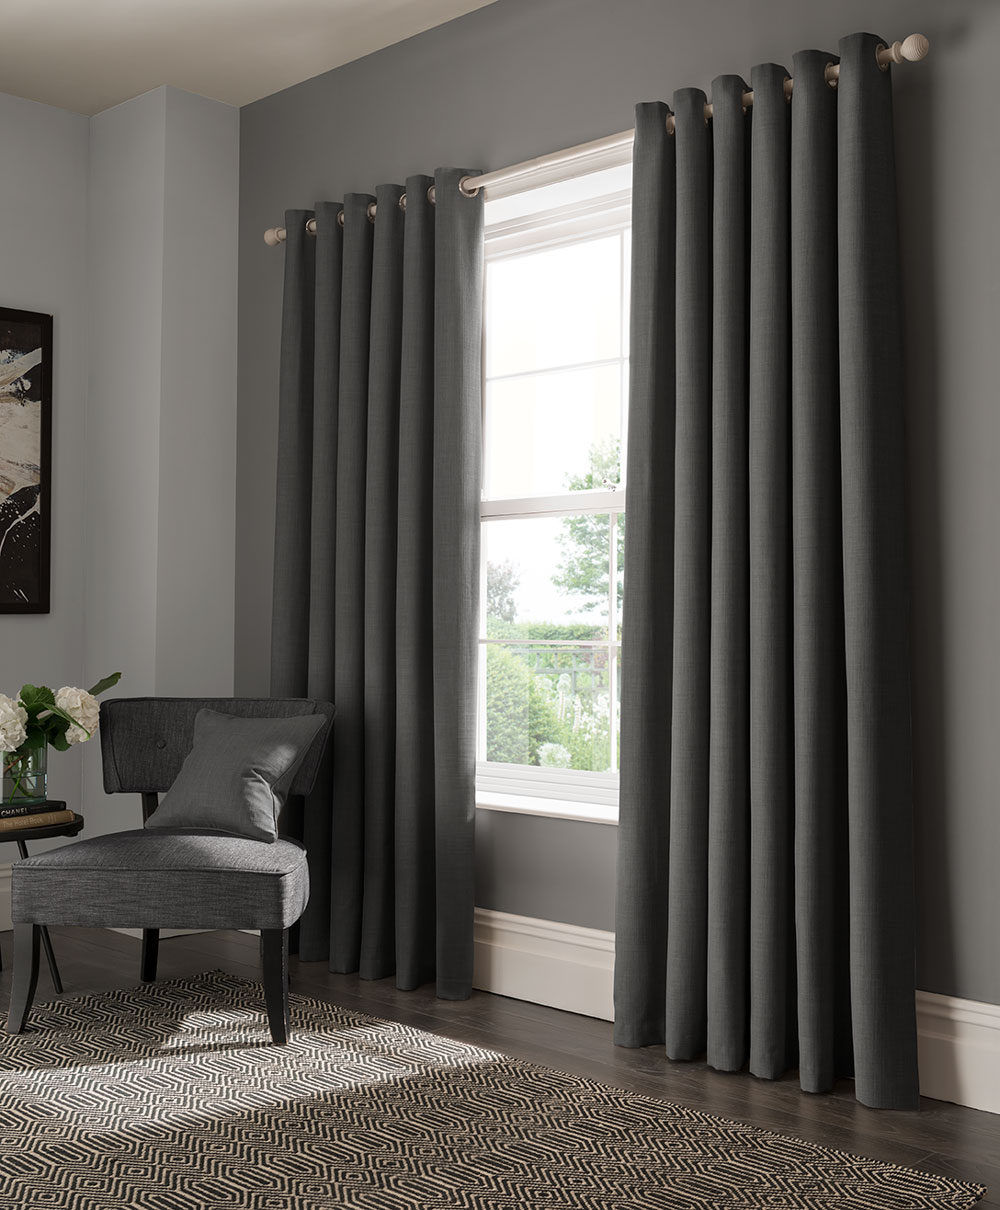 Studio G Elba Eyelet Curtains Steel Ready Made Curtains - Product code: M1104/04/90X5